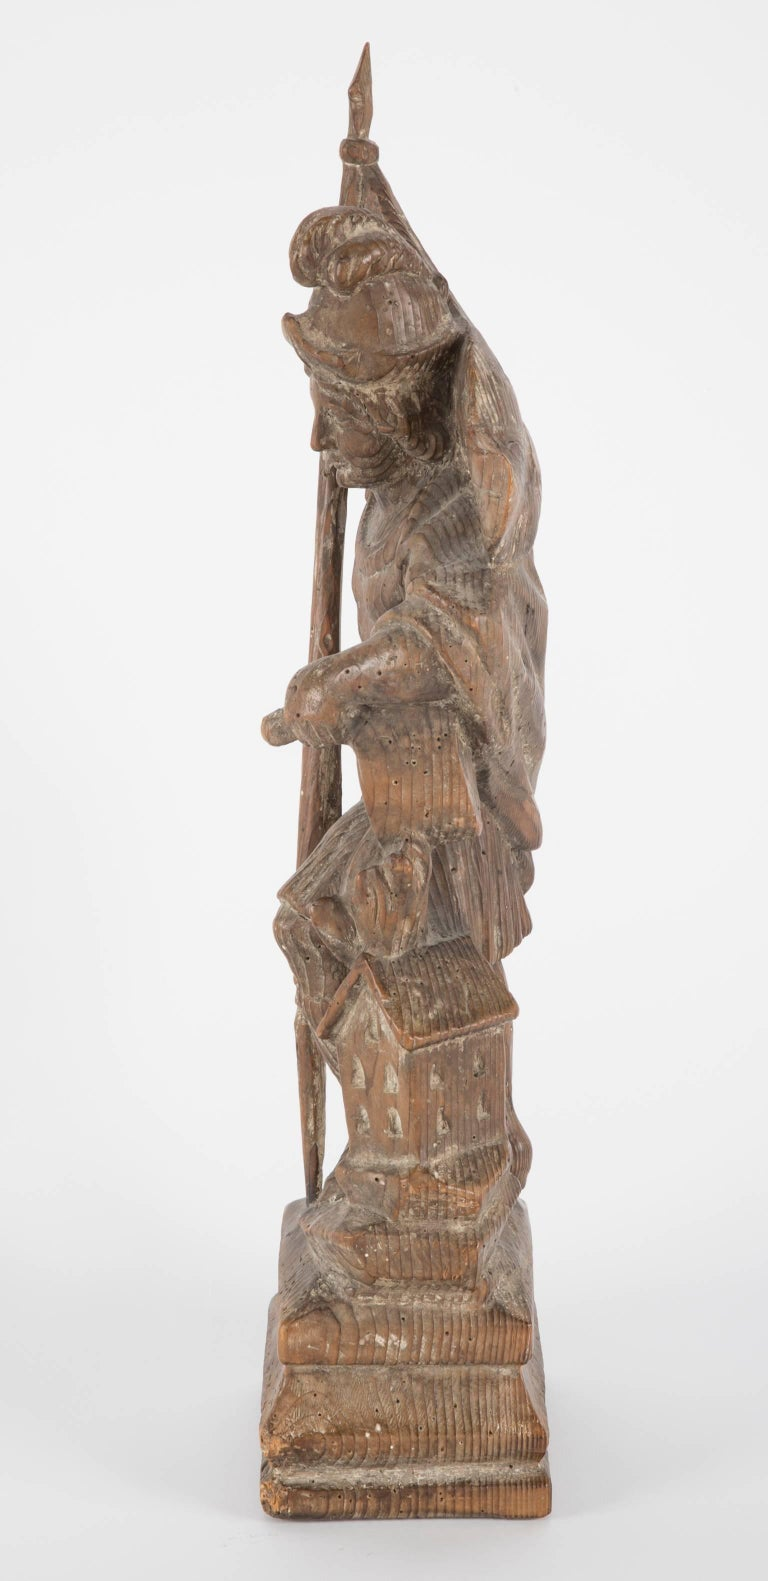 18th Century German Carved Wood Figure of Saint Florian For Sale 1